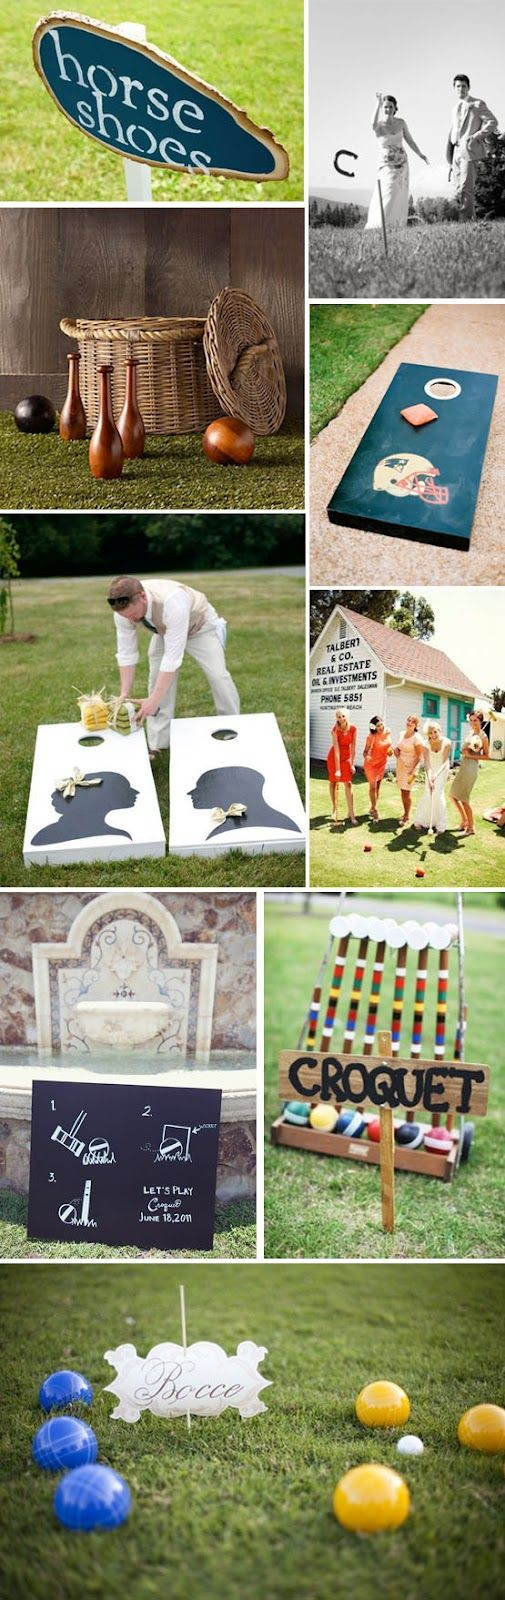 38 best lawn games images on pinterest lawn games backyard